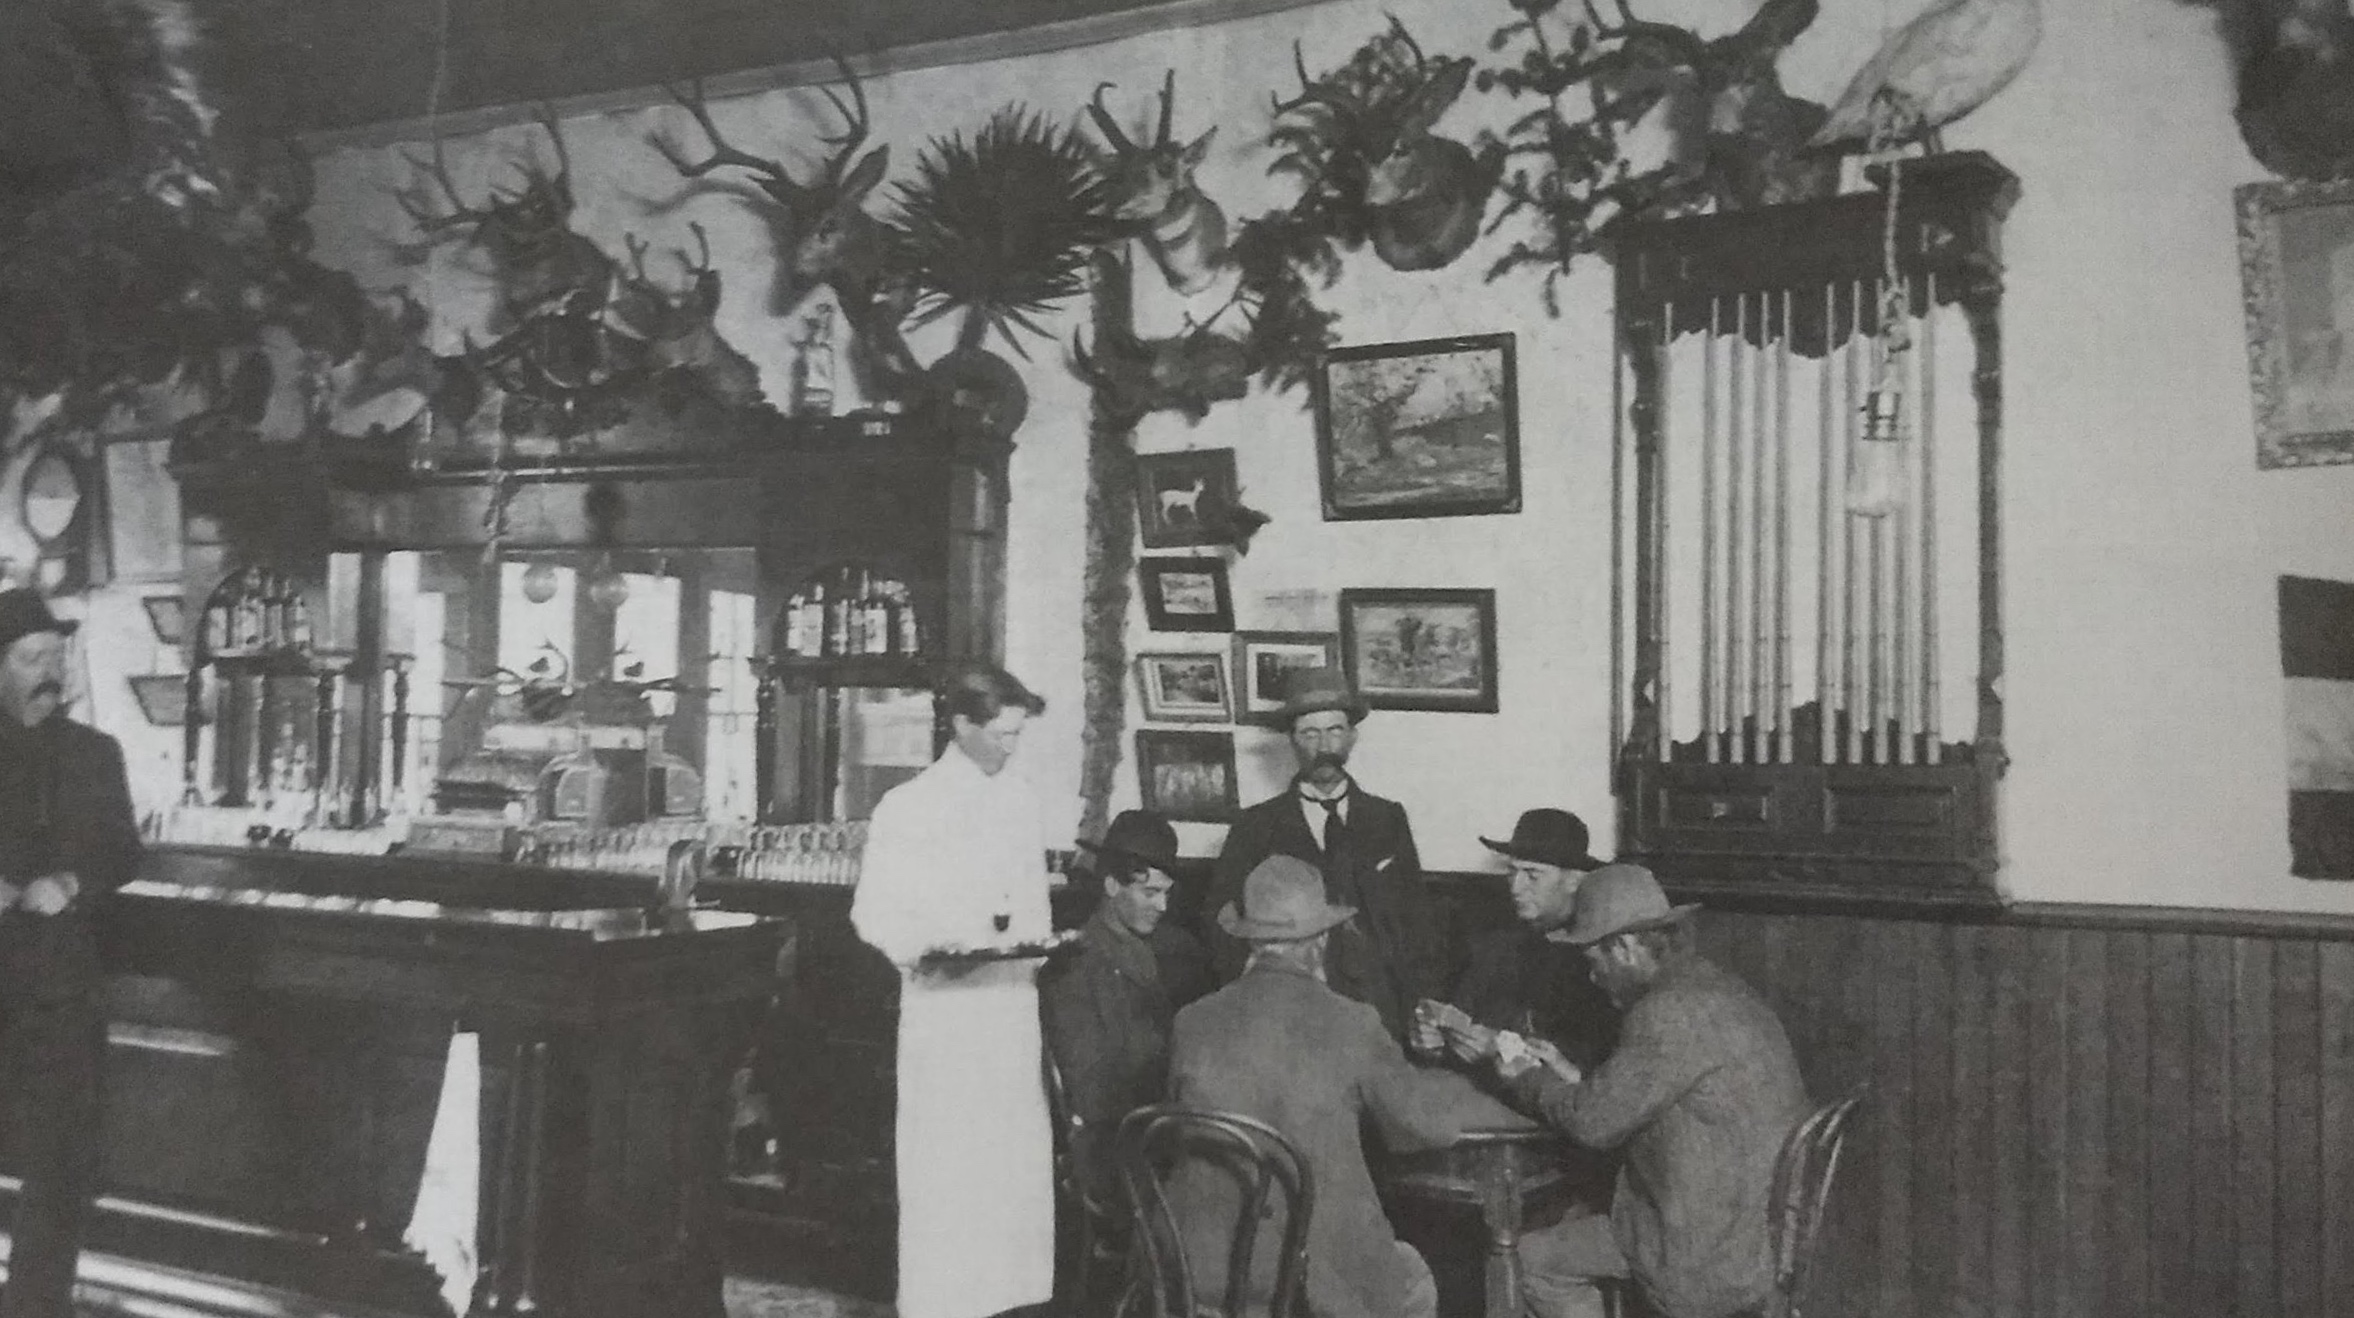 The original Buckhorn Saloon, pictured in 1903.